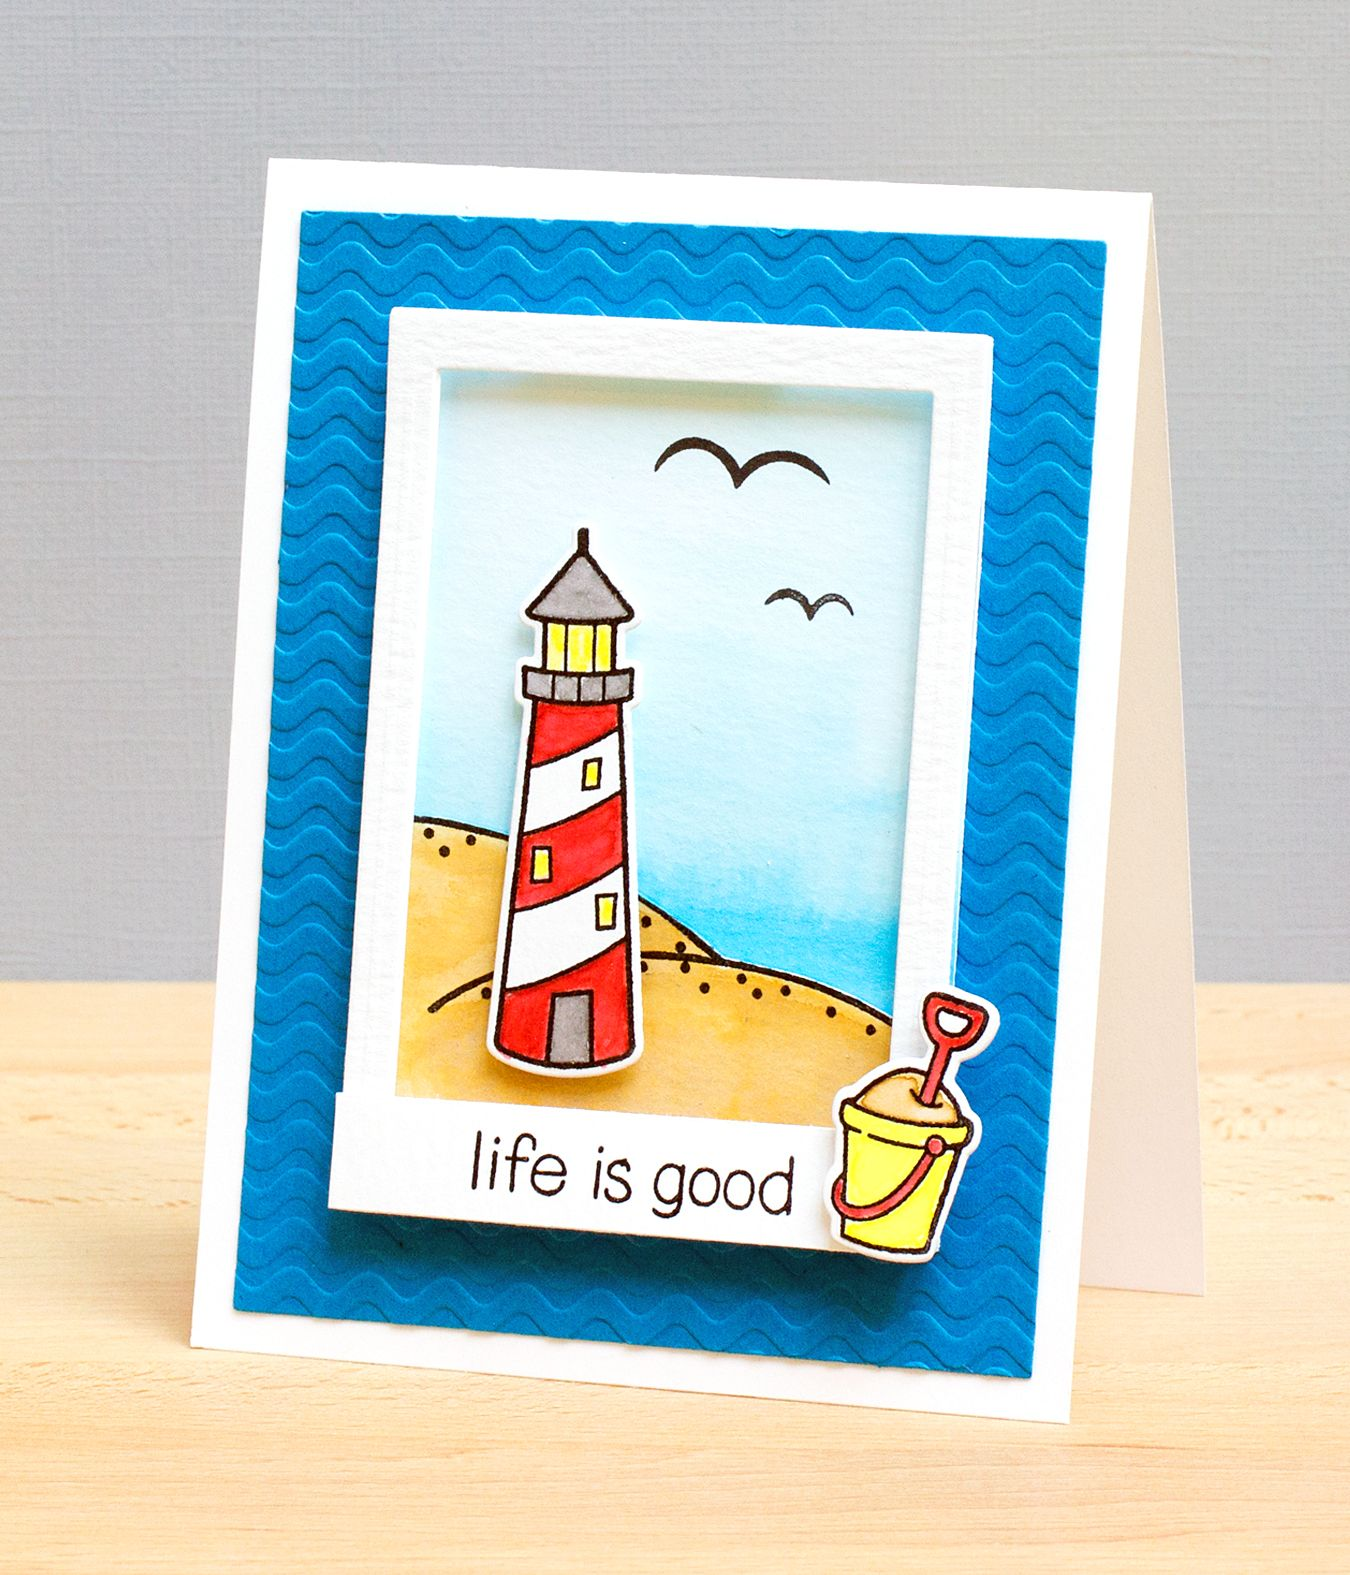 Handmade card lawnfawnlifeisgood lighthouse shor scene card summer lighthouse lawn fawn life is good sea beach seaside life by the sea sand castle bucket crab summer living relax life is good kristyandbryce Choice Image